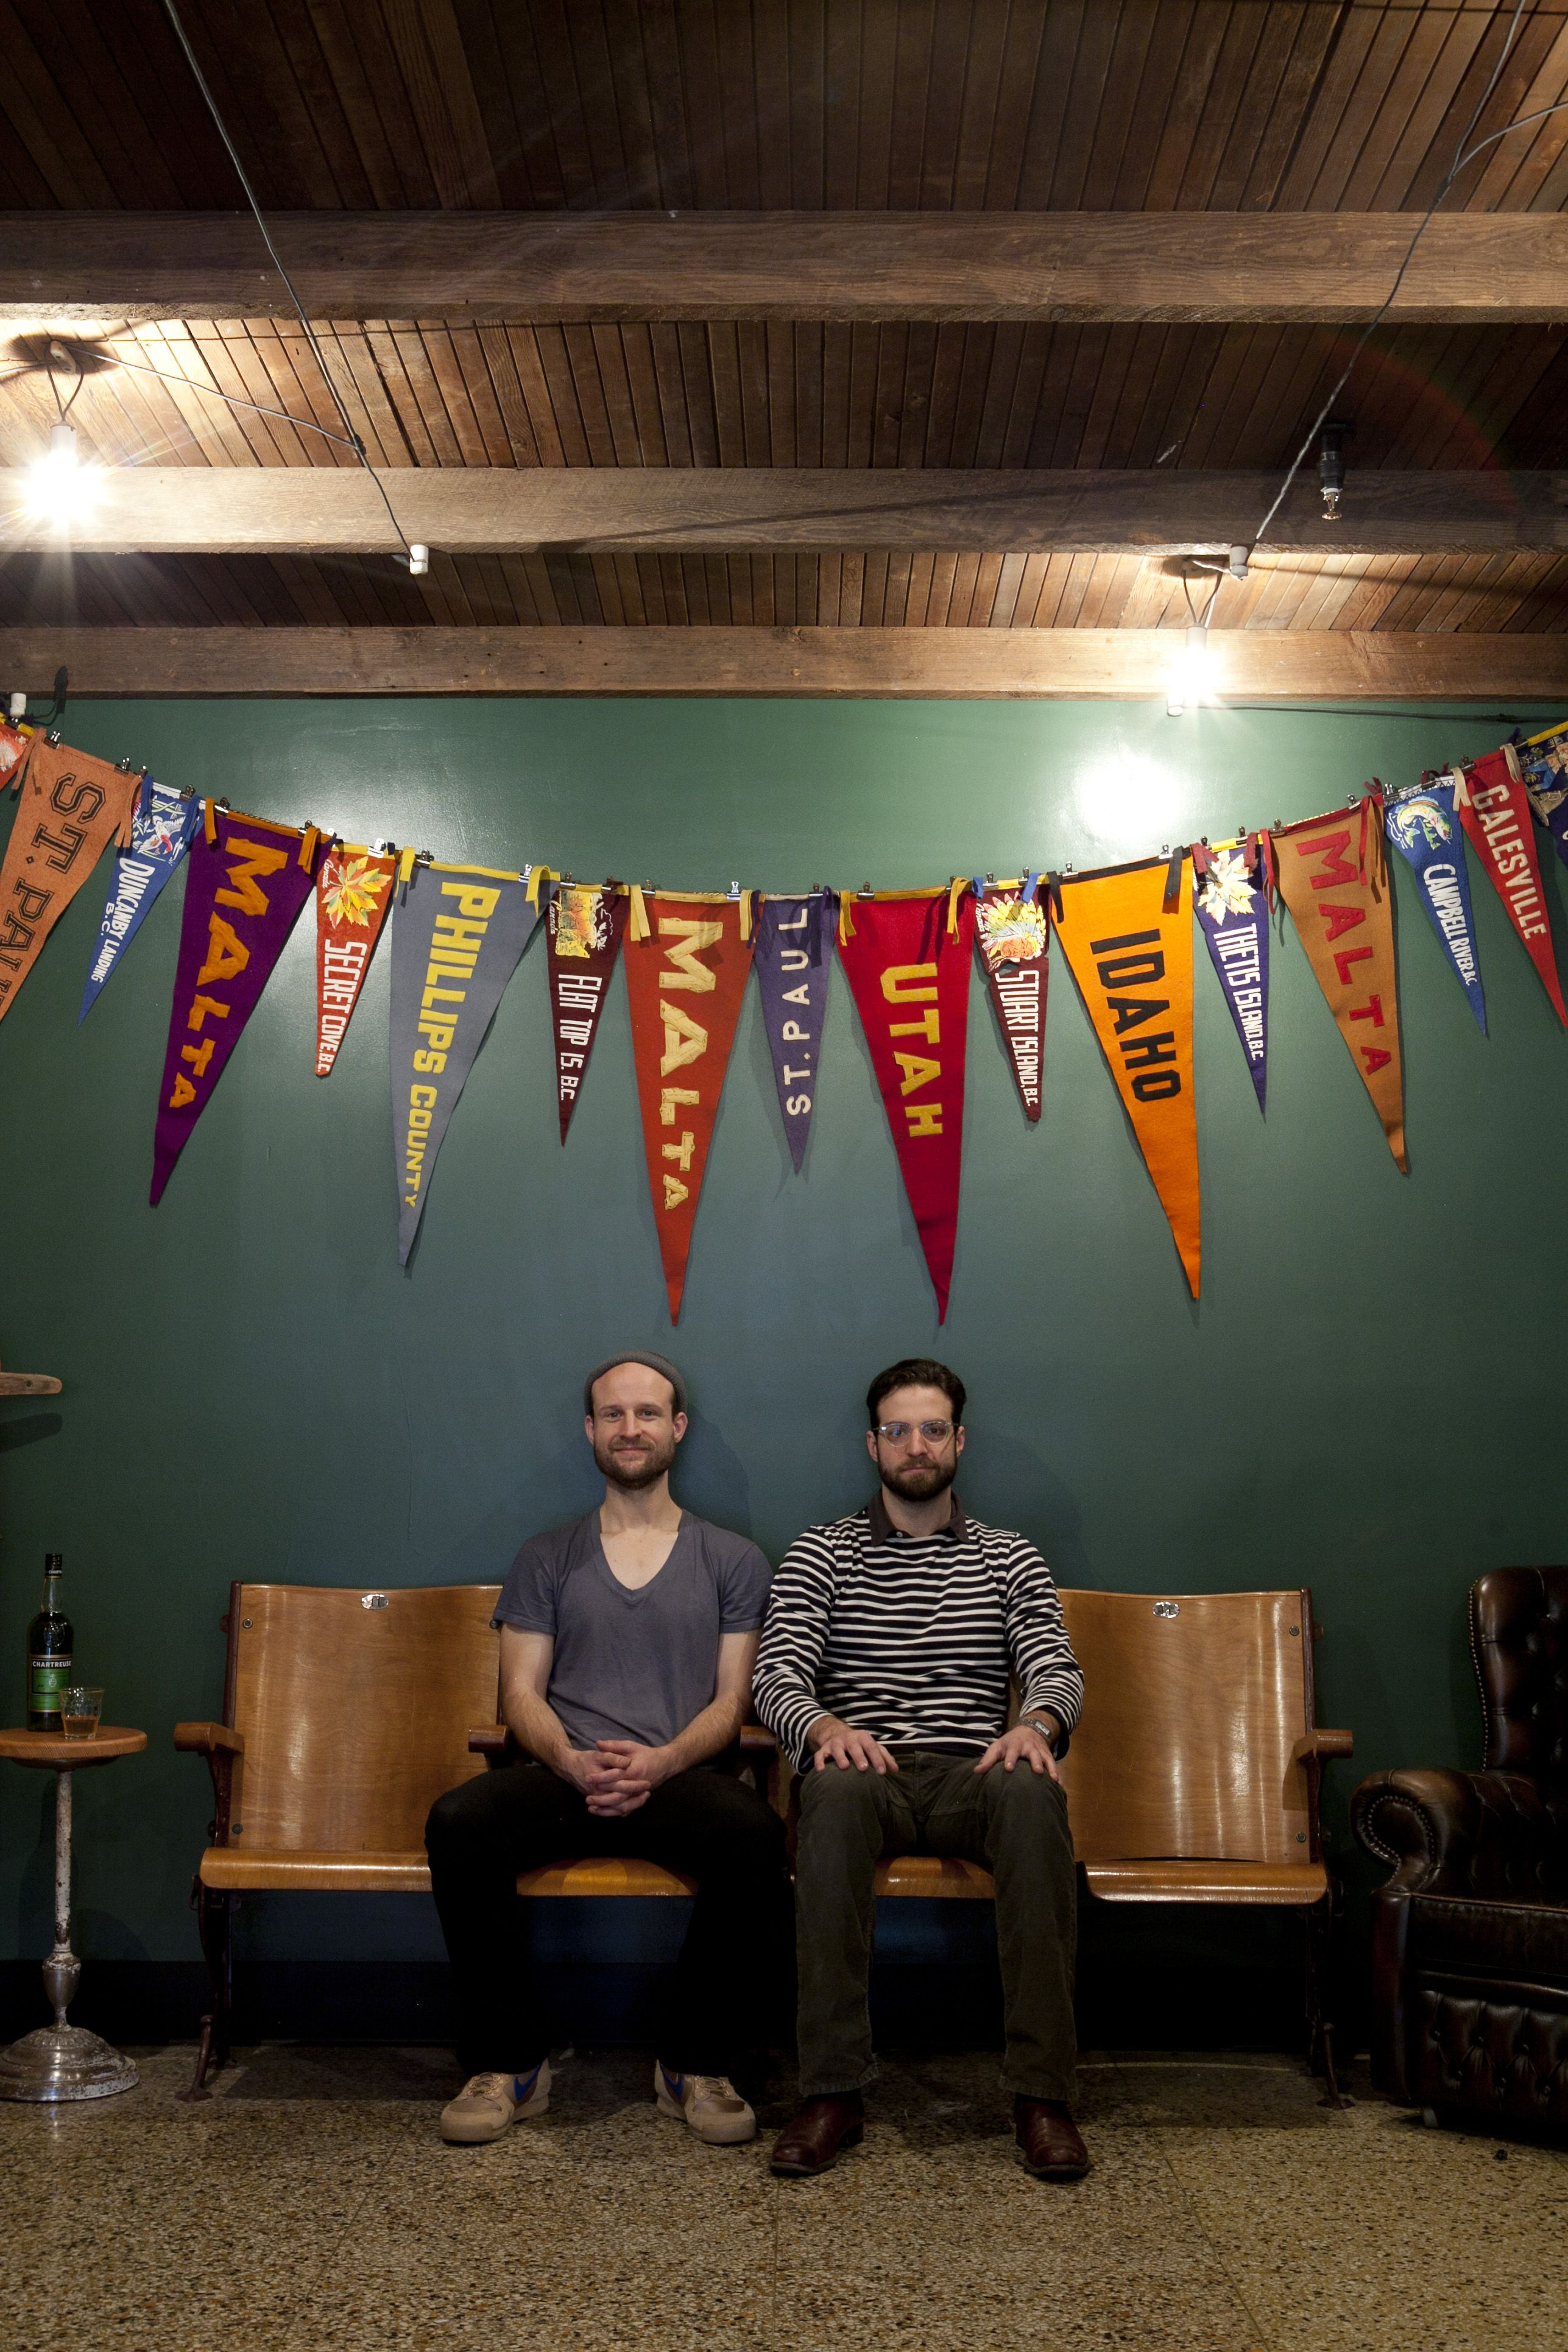 Owners Dustin And Thomas The Barn Light Eugene Oregon Interior Design Direction